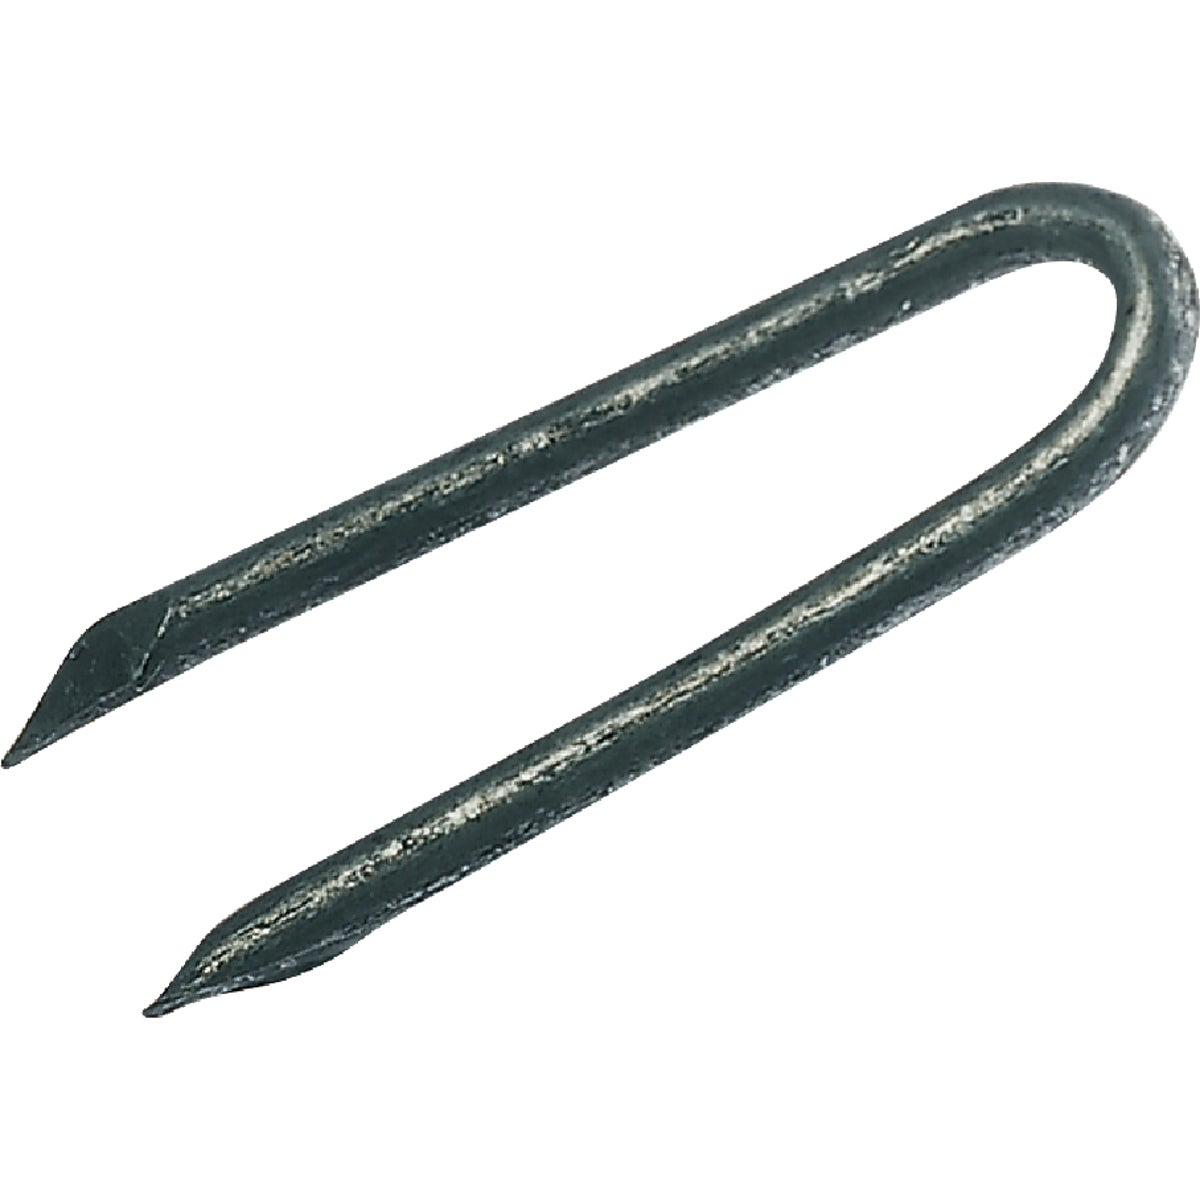 "1LB HDG 1-1/4"" STAPLE - 720759 by Primesource"